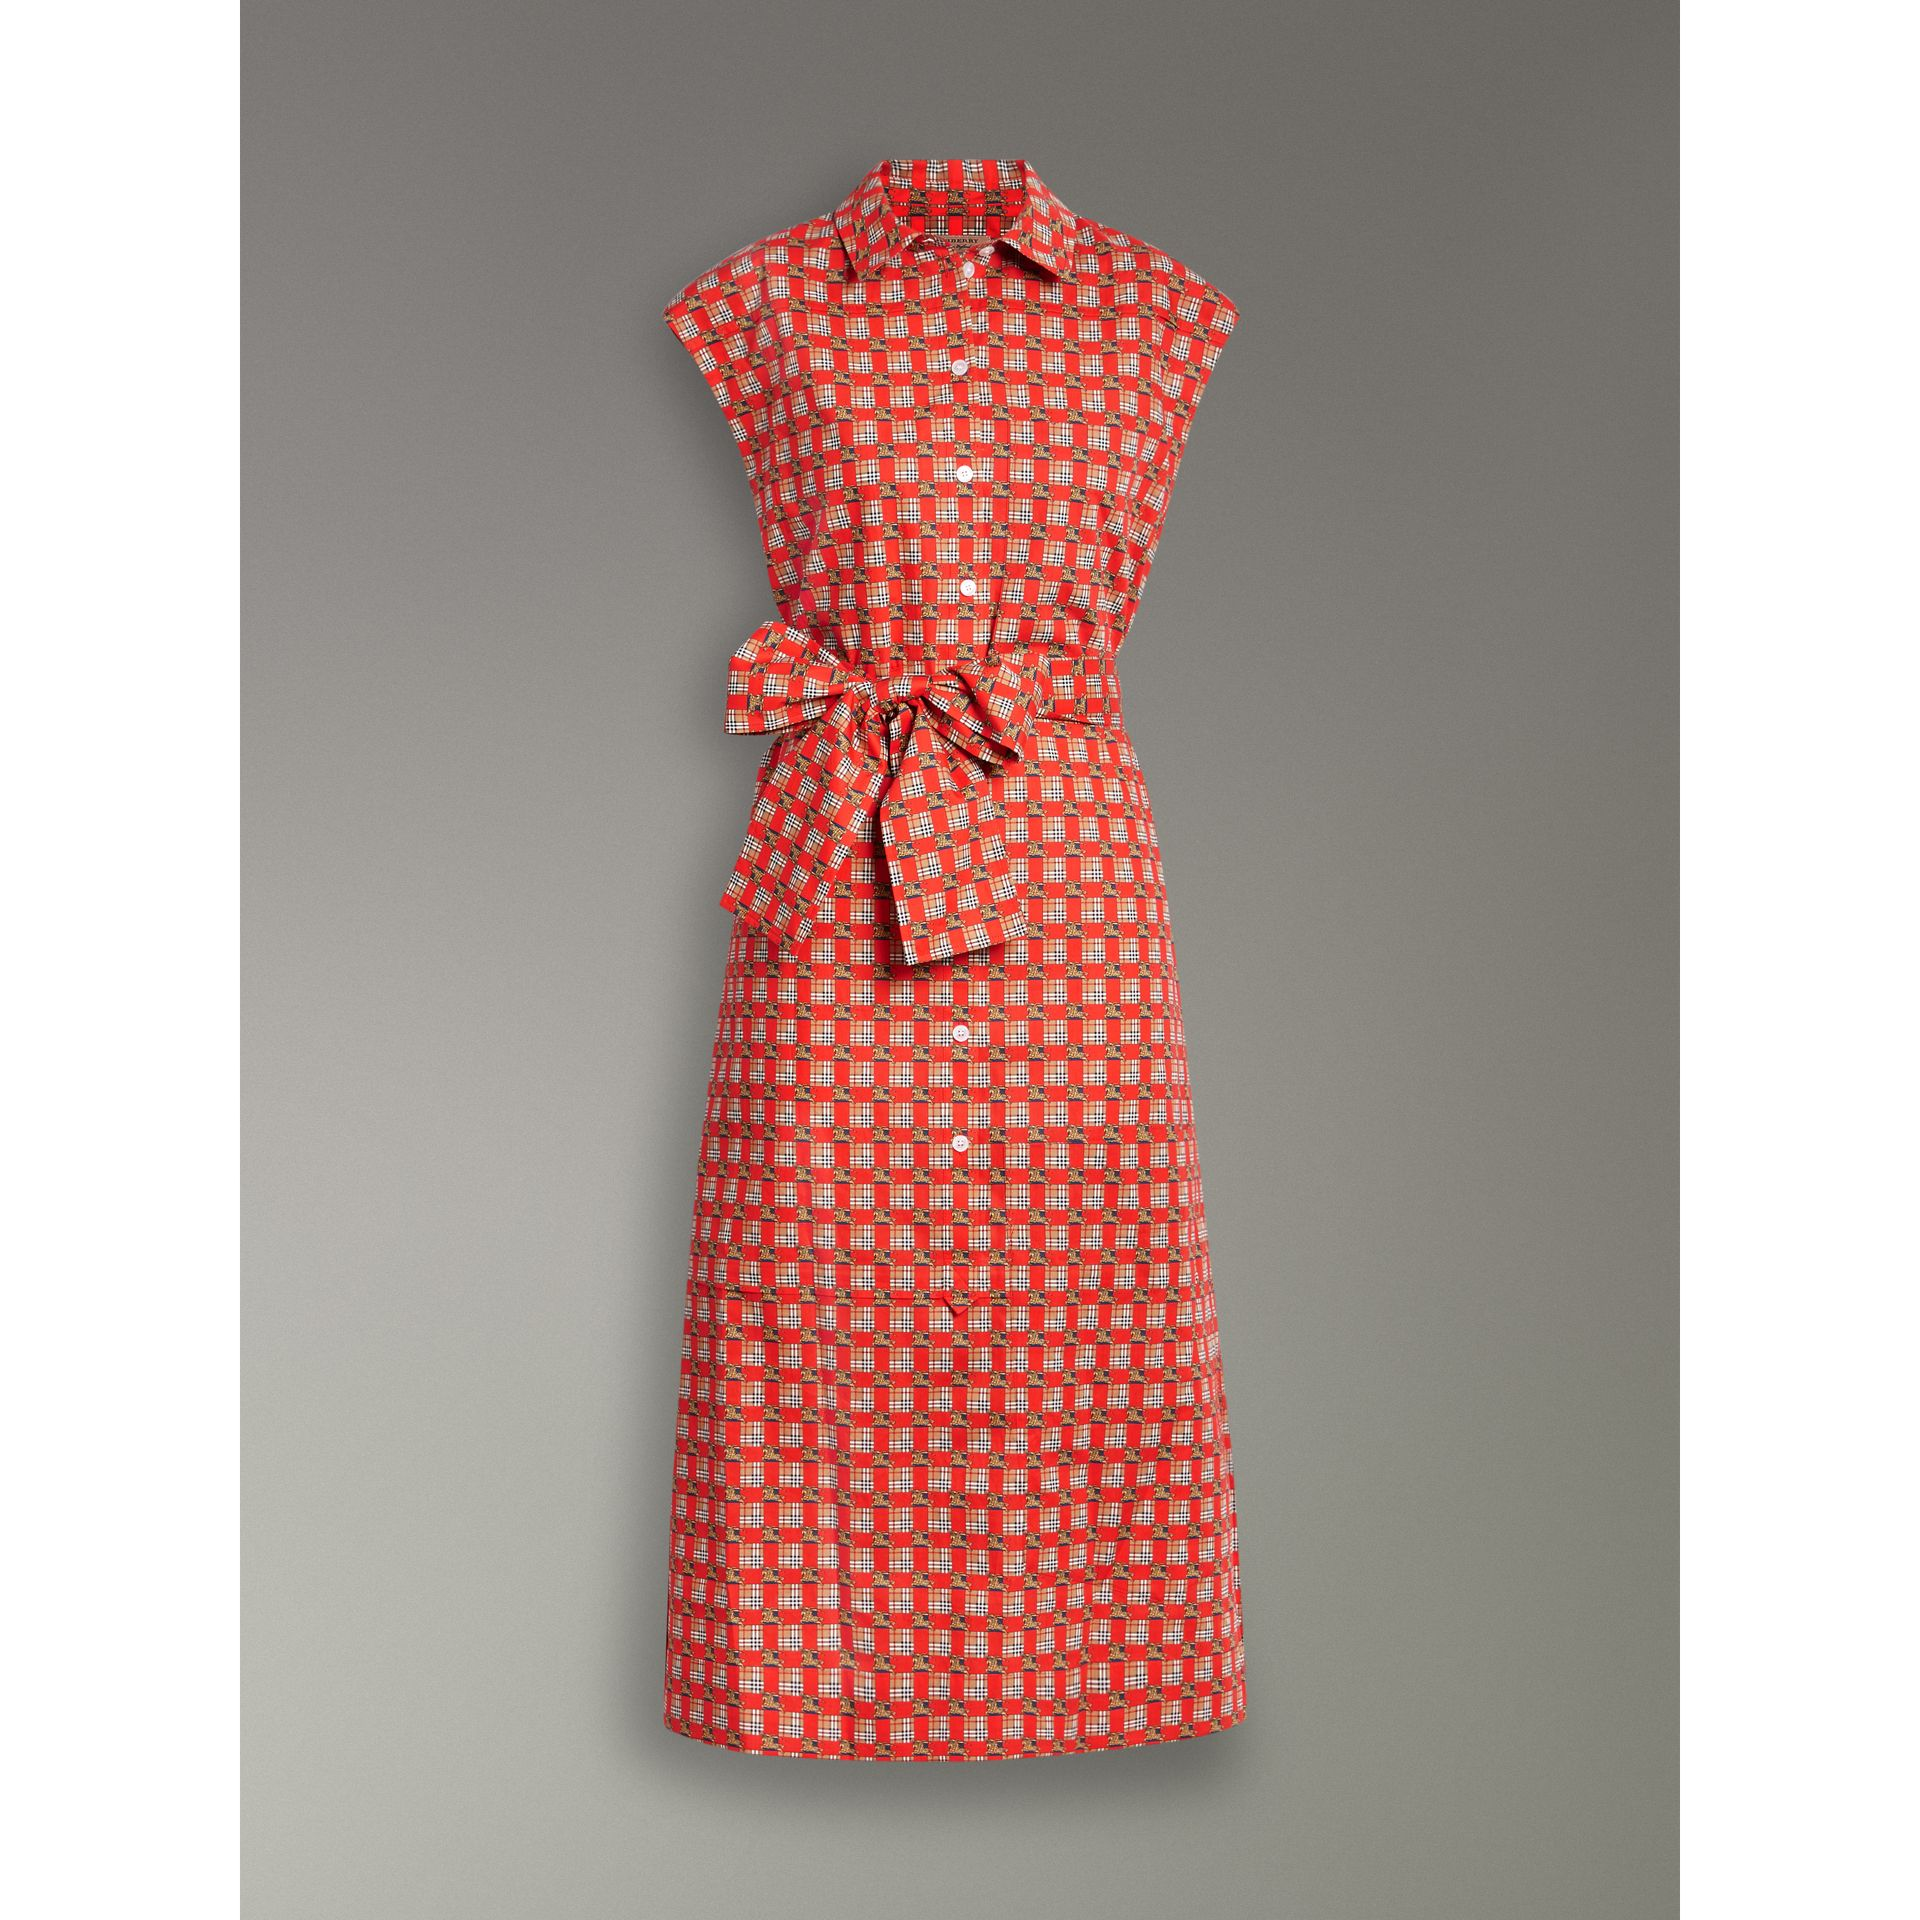 Tiled Archive Print Cotton Shirt Dress in Bright Red - Women | Burberry - gallery image 3